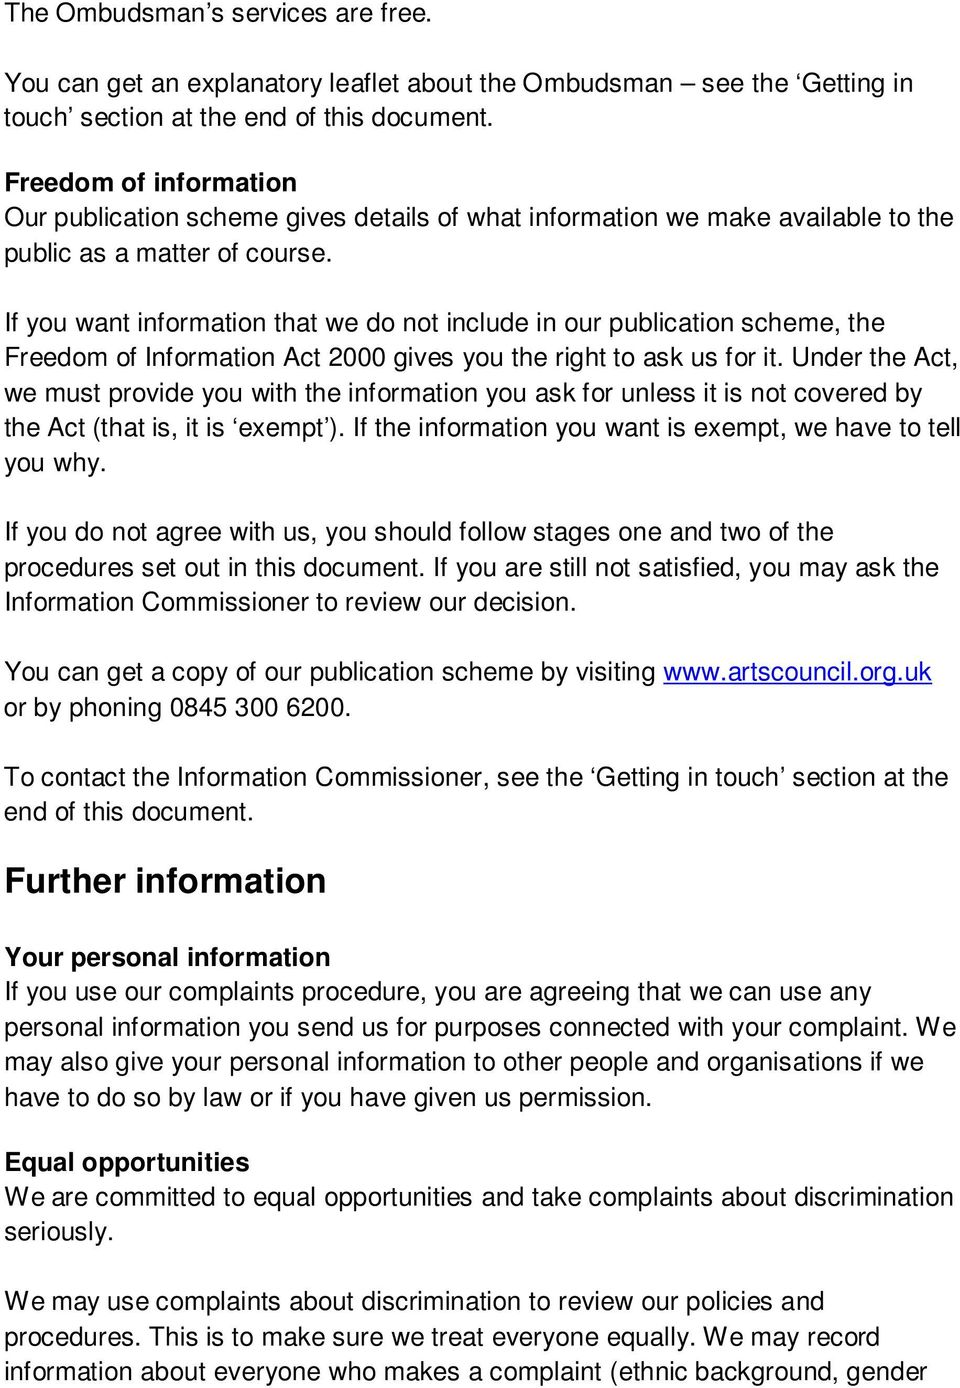 If you want information that we do not include in our publication scheme, the Freedom of Information Act 2000 gives you the right to ask us for it.